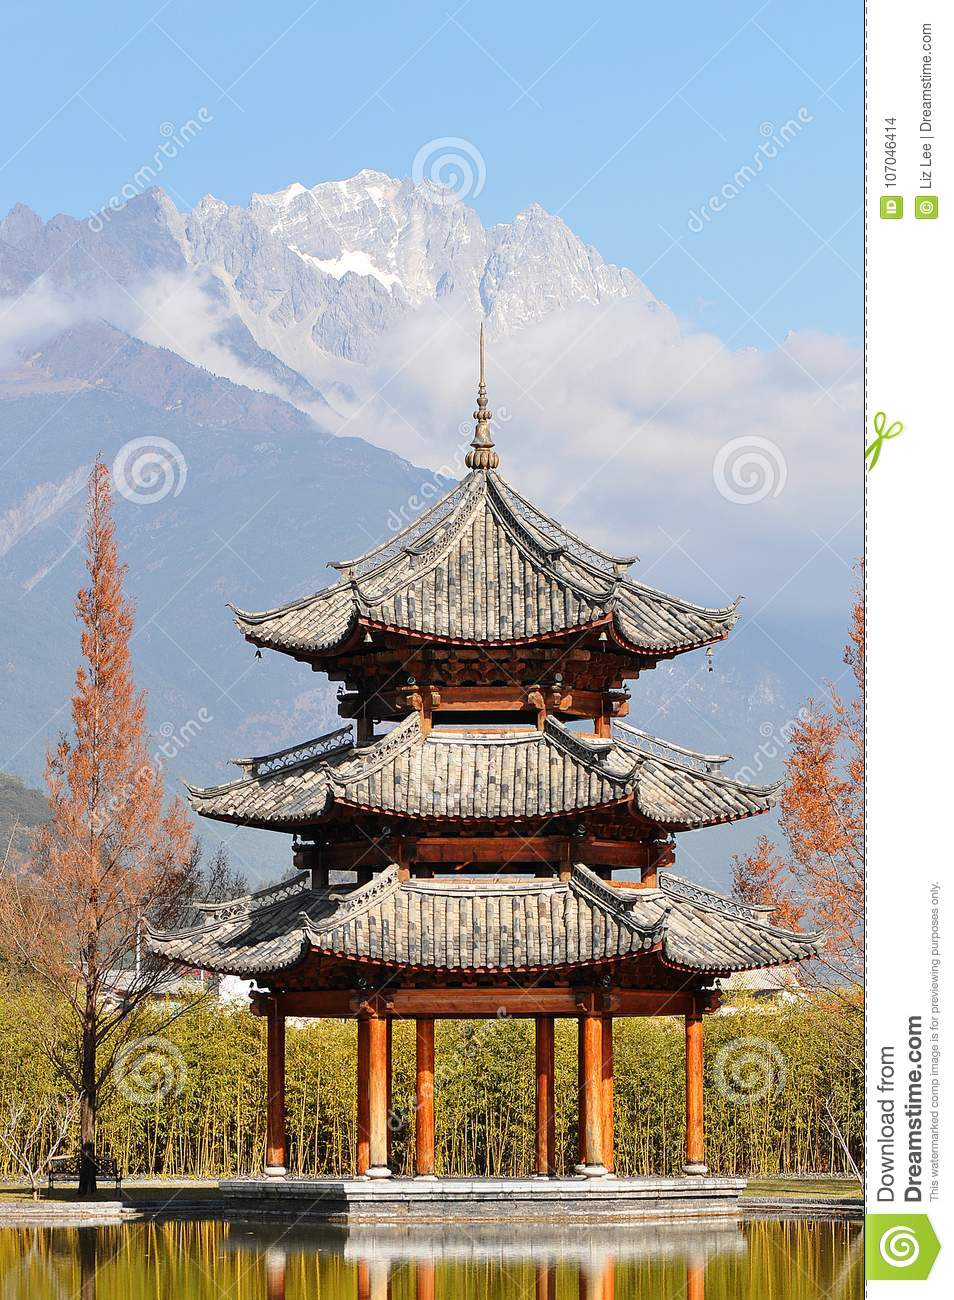 Pavillon und Jade Dragon Snow Mountain